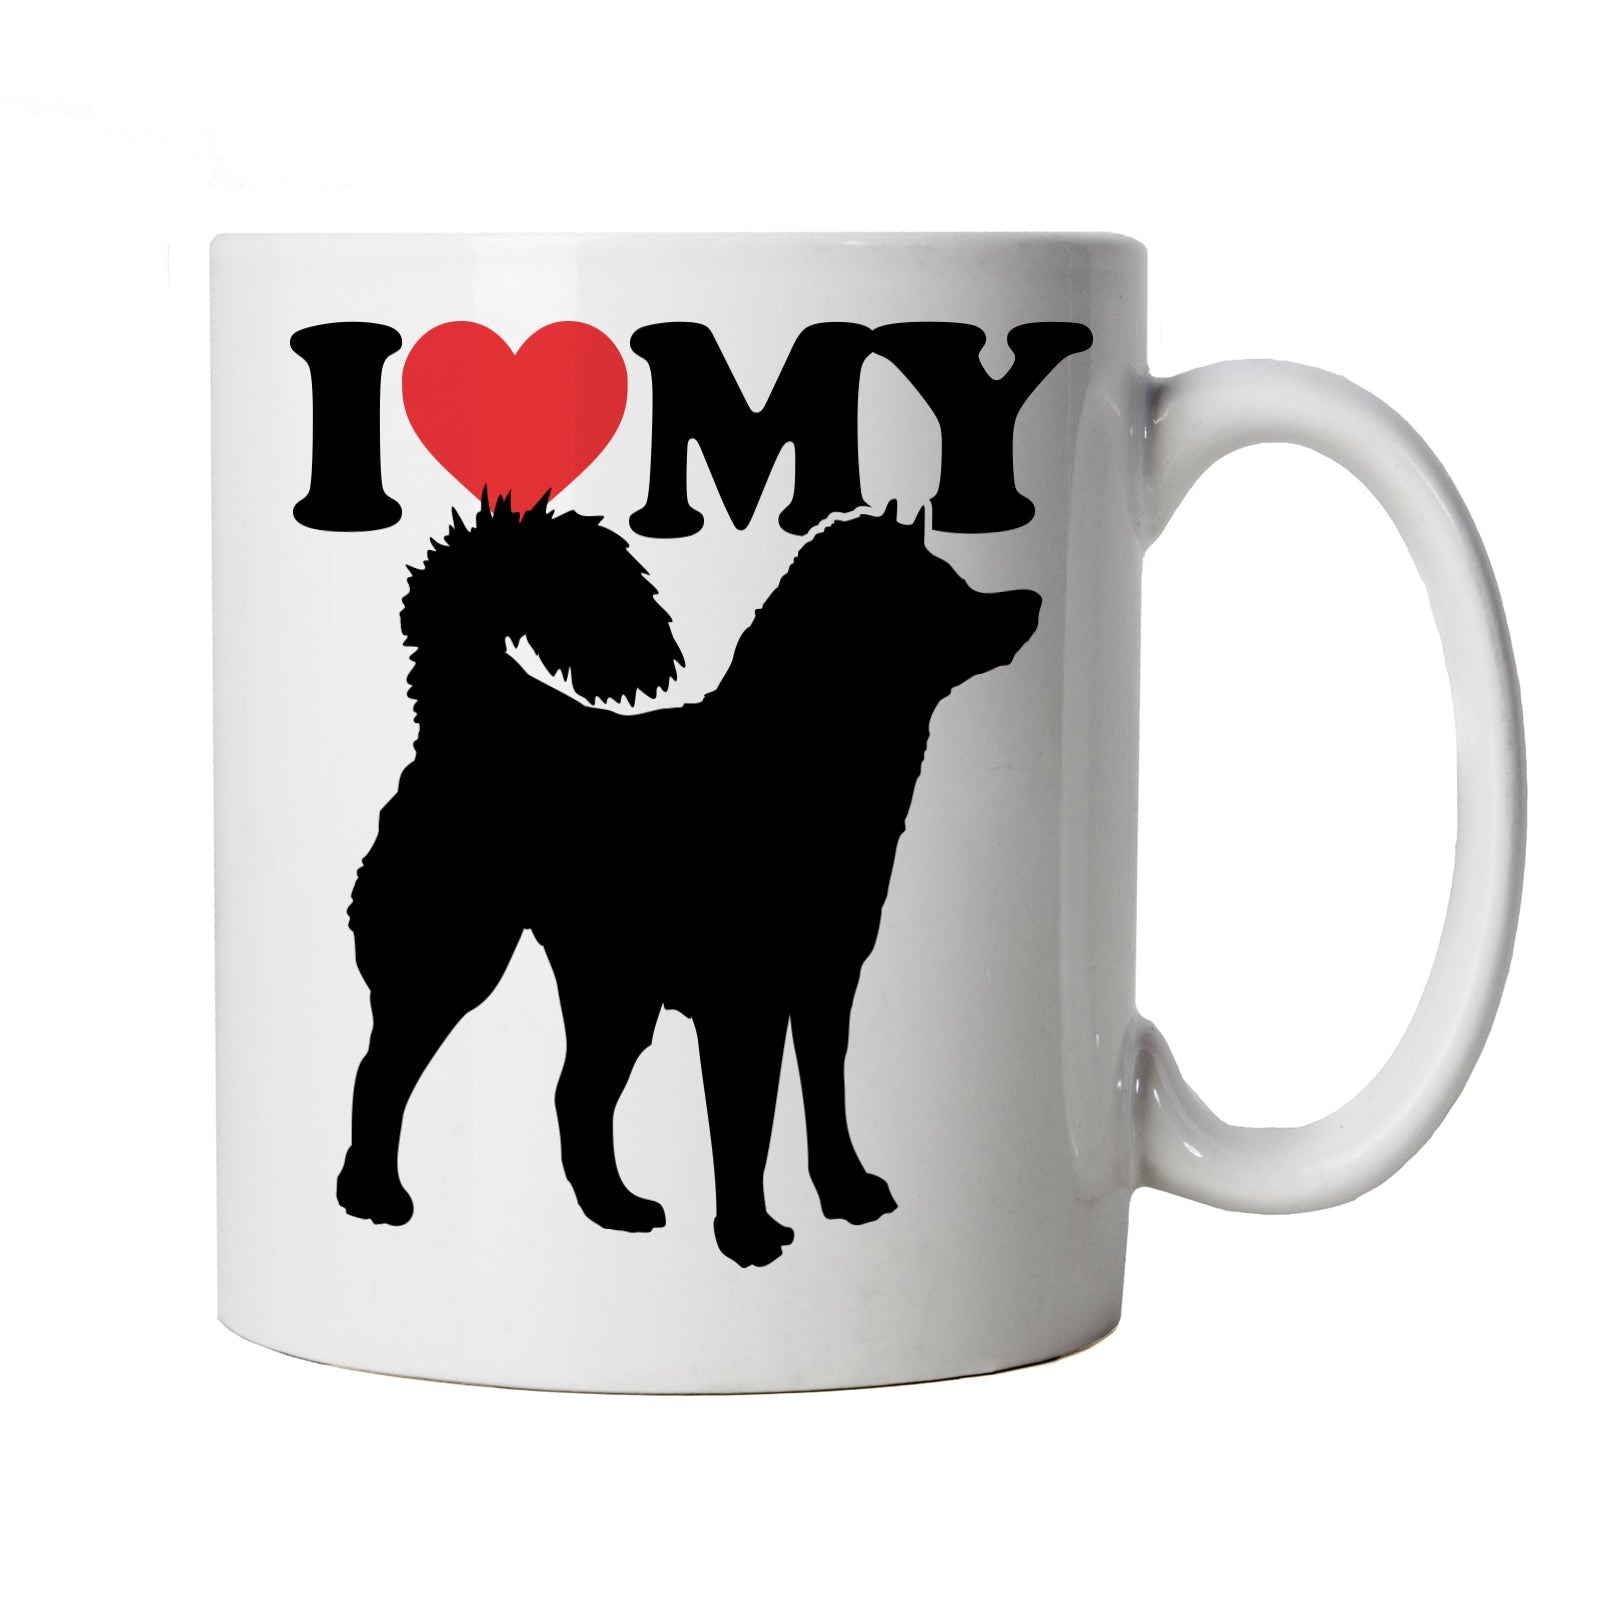 I Love My Alaskan Malamute Mug | Dog Gift Fur Baby Lover Owner Mans Best Friend | Crufts Dog Show Kennel Club Pedigree Breed Puppy | Animals Cup Gift